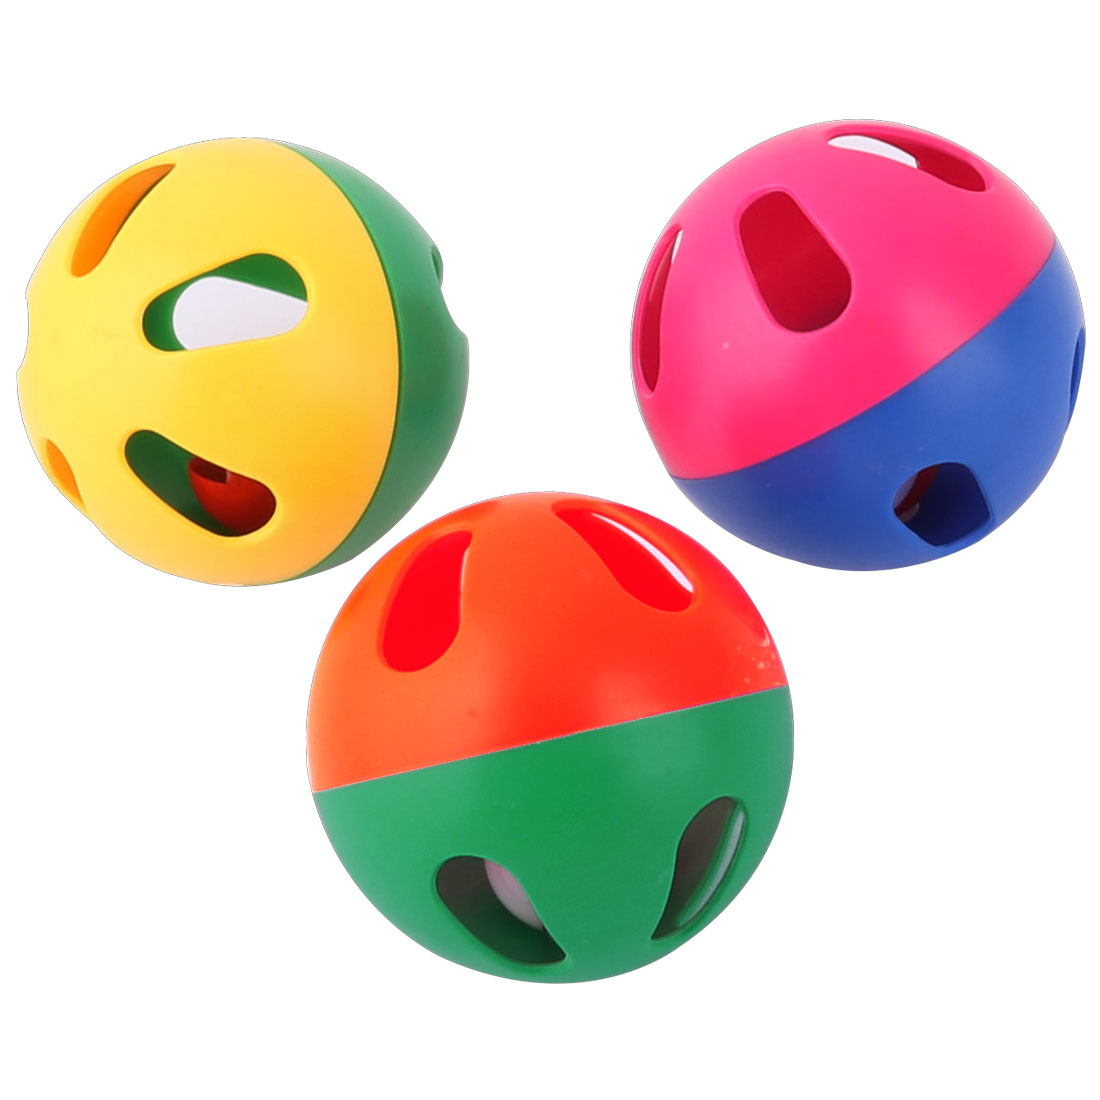 6cm Dia. Cat Dog Animals Plastic Pet Playing Bell Ball Toy Assorted Color 3pcs